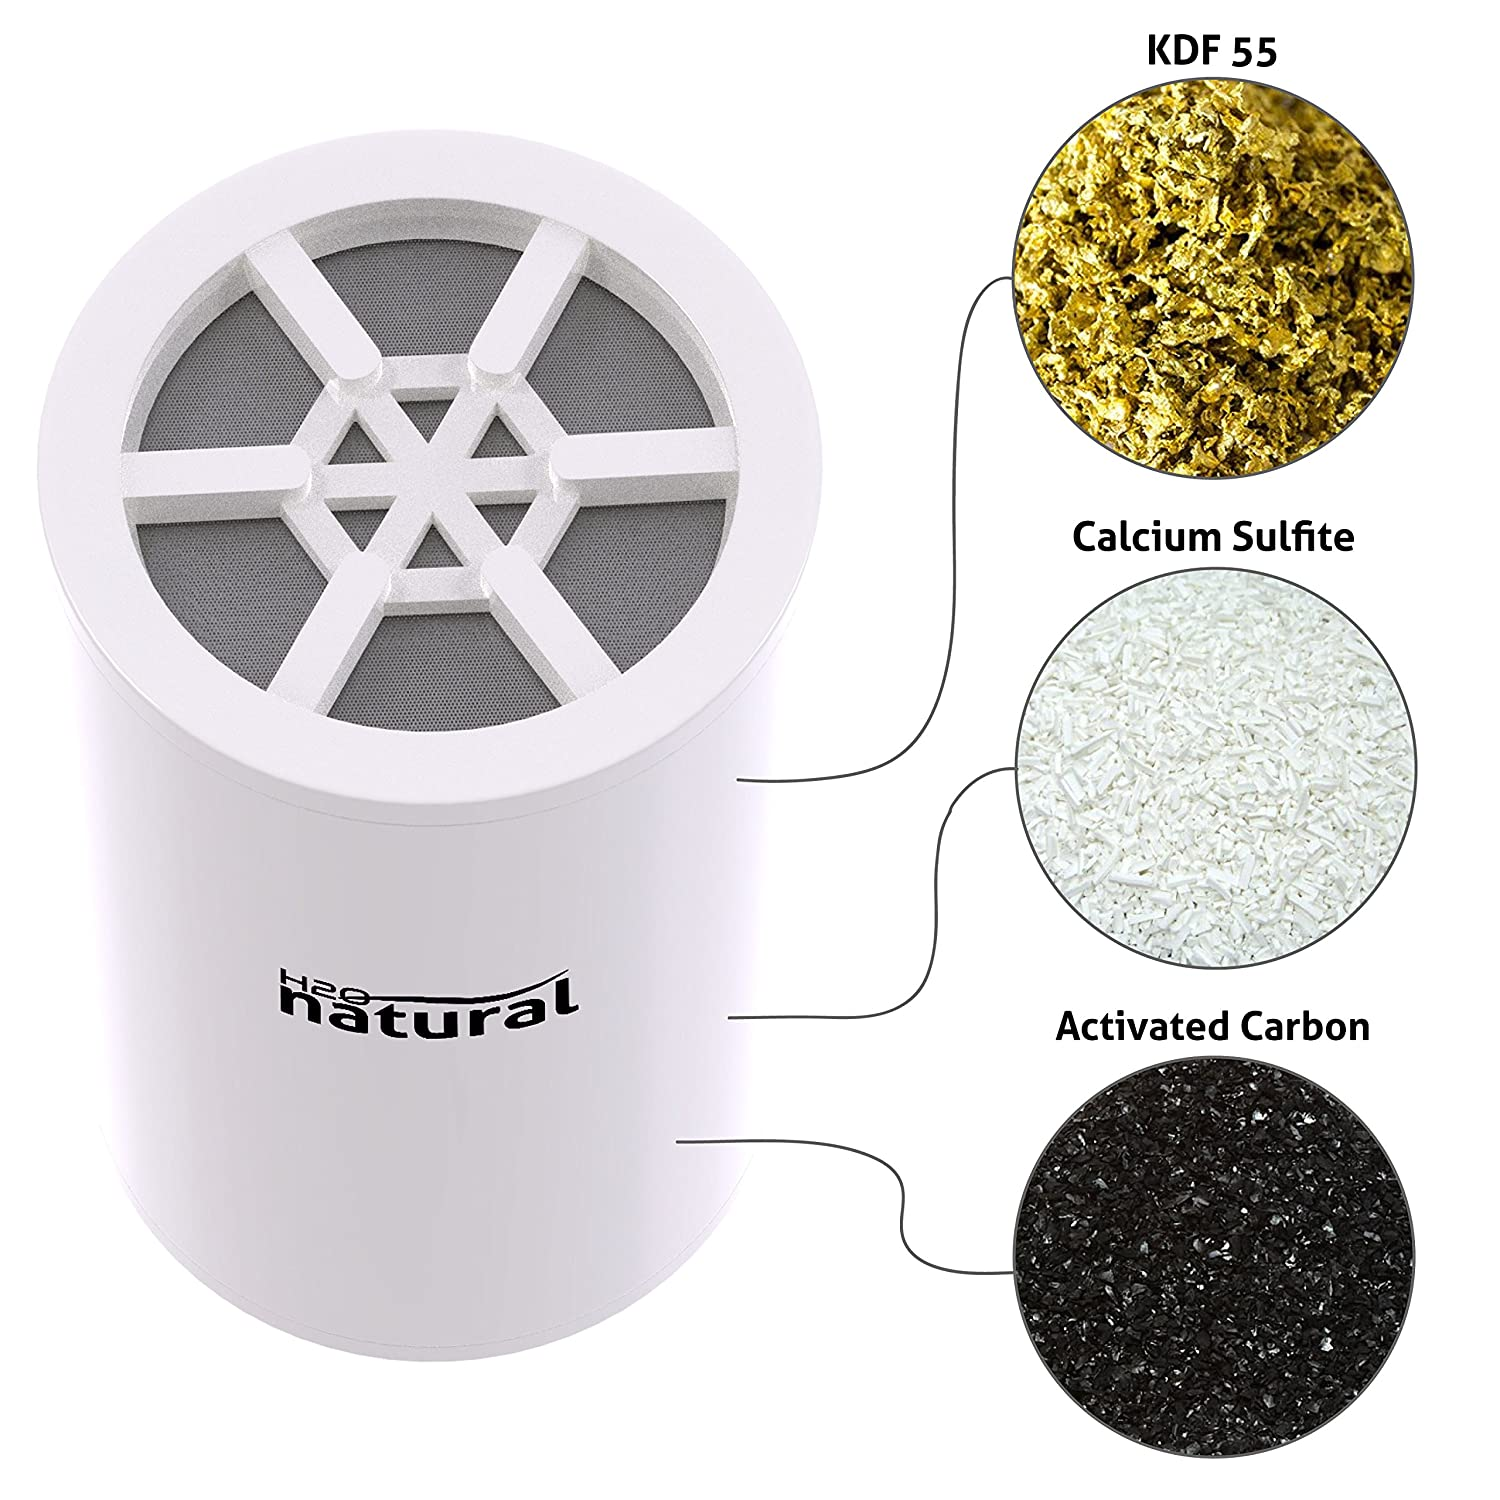 Shower Filter By H2o Natural  High Output Chlorine Removing Showerhead  Filtration System & Water Softener Purifier  Replaceable Cartridge With  Kdf